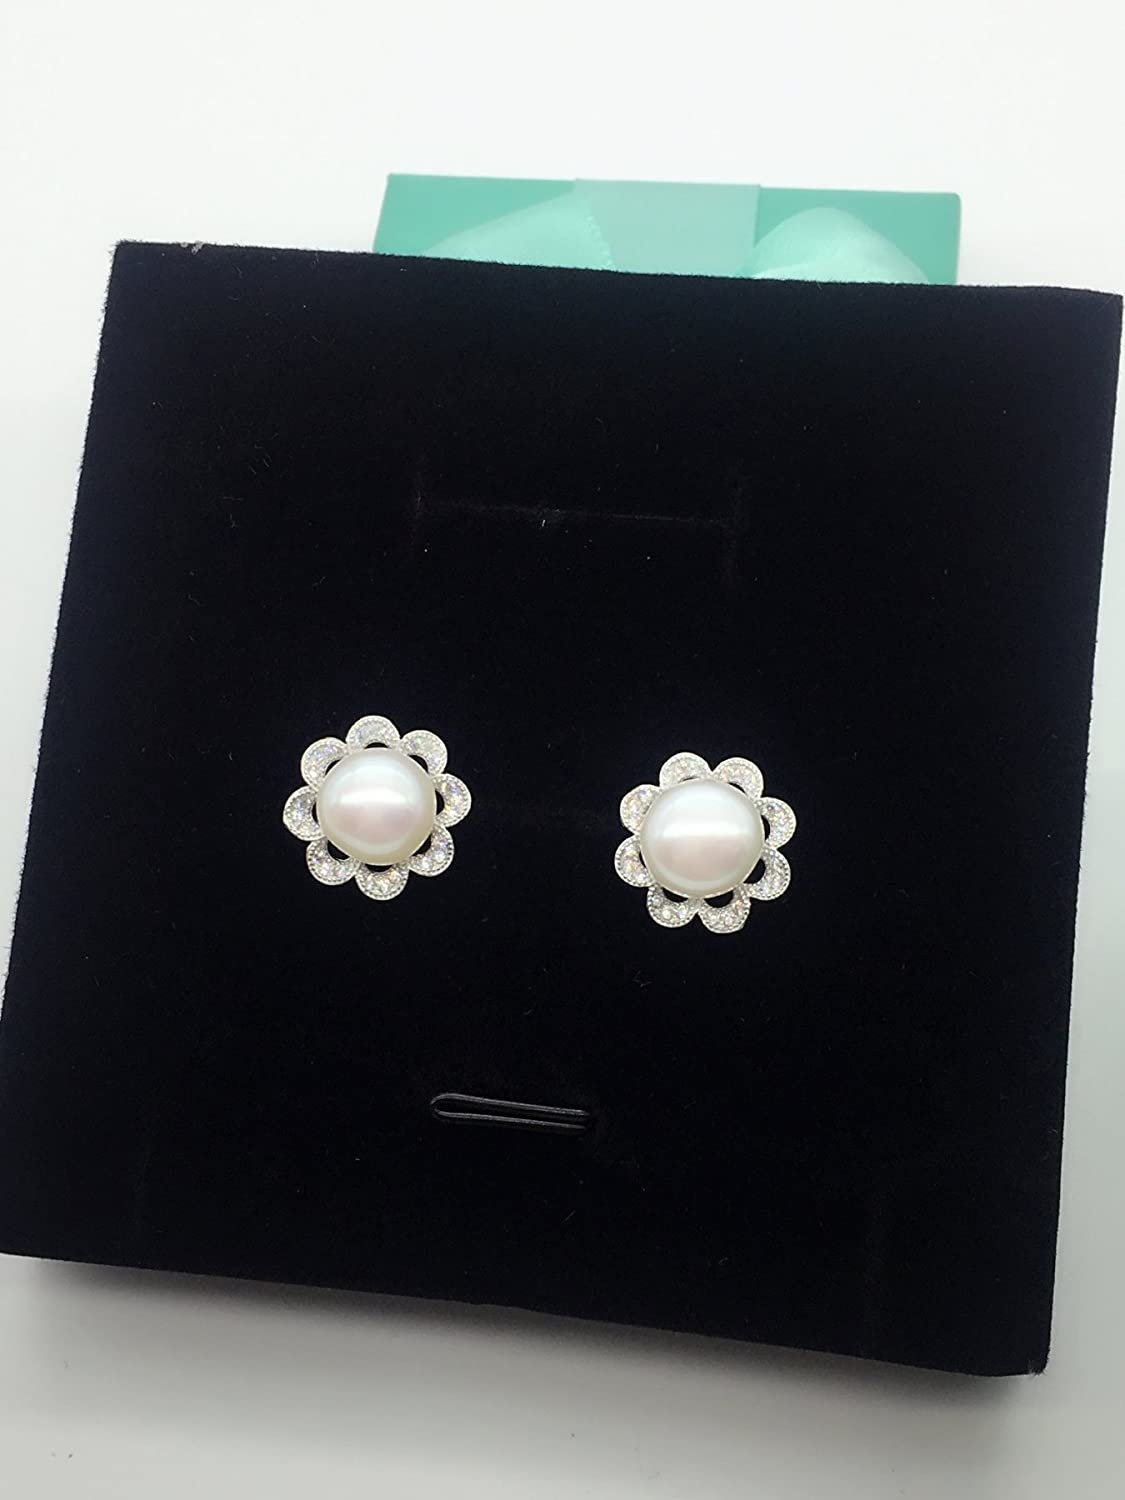 Helen de Lete Sun Flower Big Pearl 925 Sterling Silver Stud Earrings